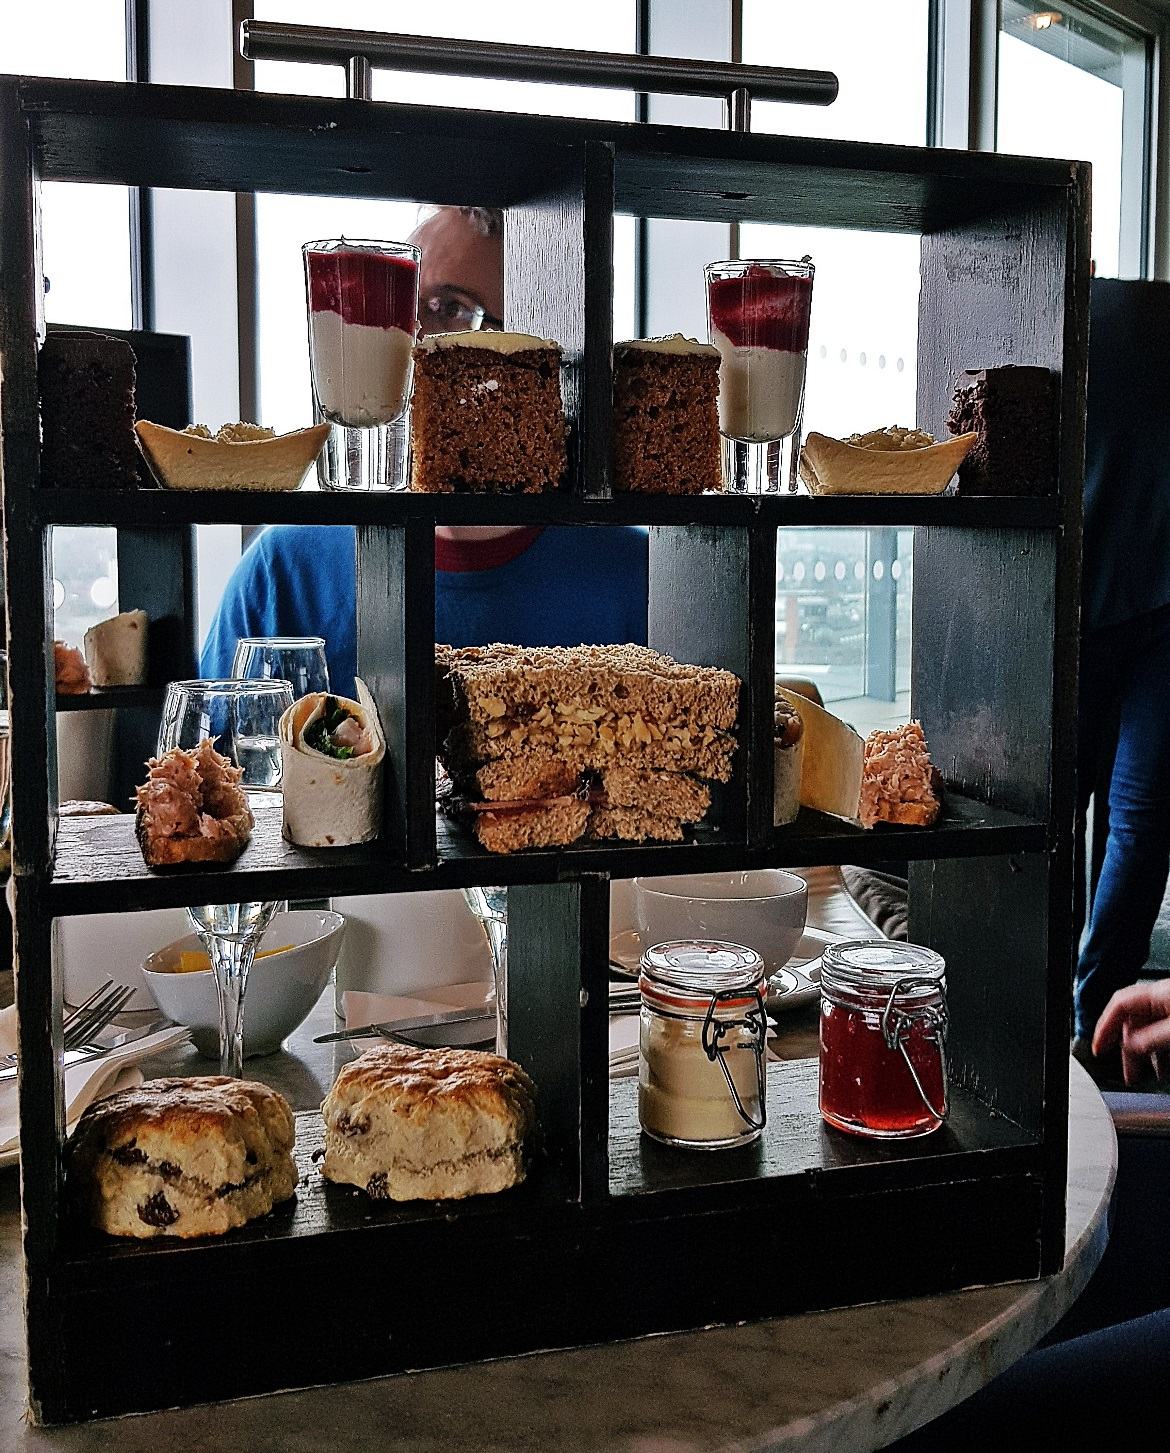 Afternoon Tea at Sky Lounge - March 2018 Monthly Recap by BeckyBecky Blogs